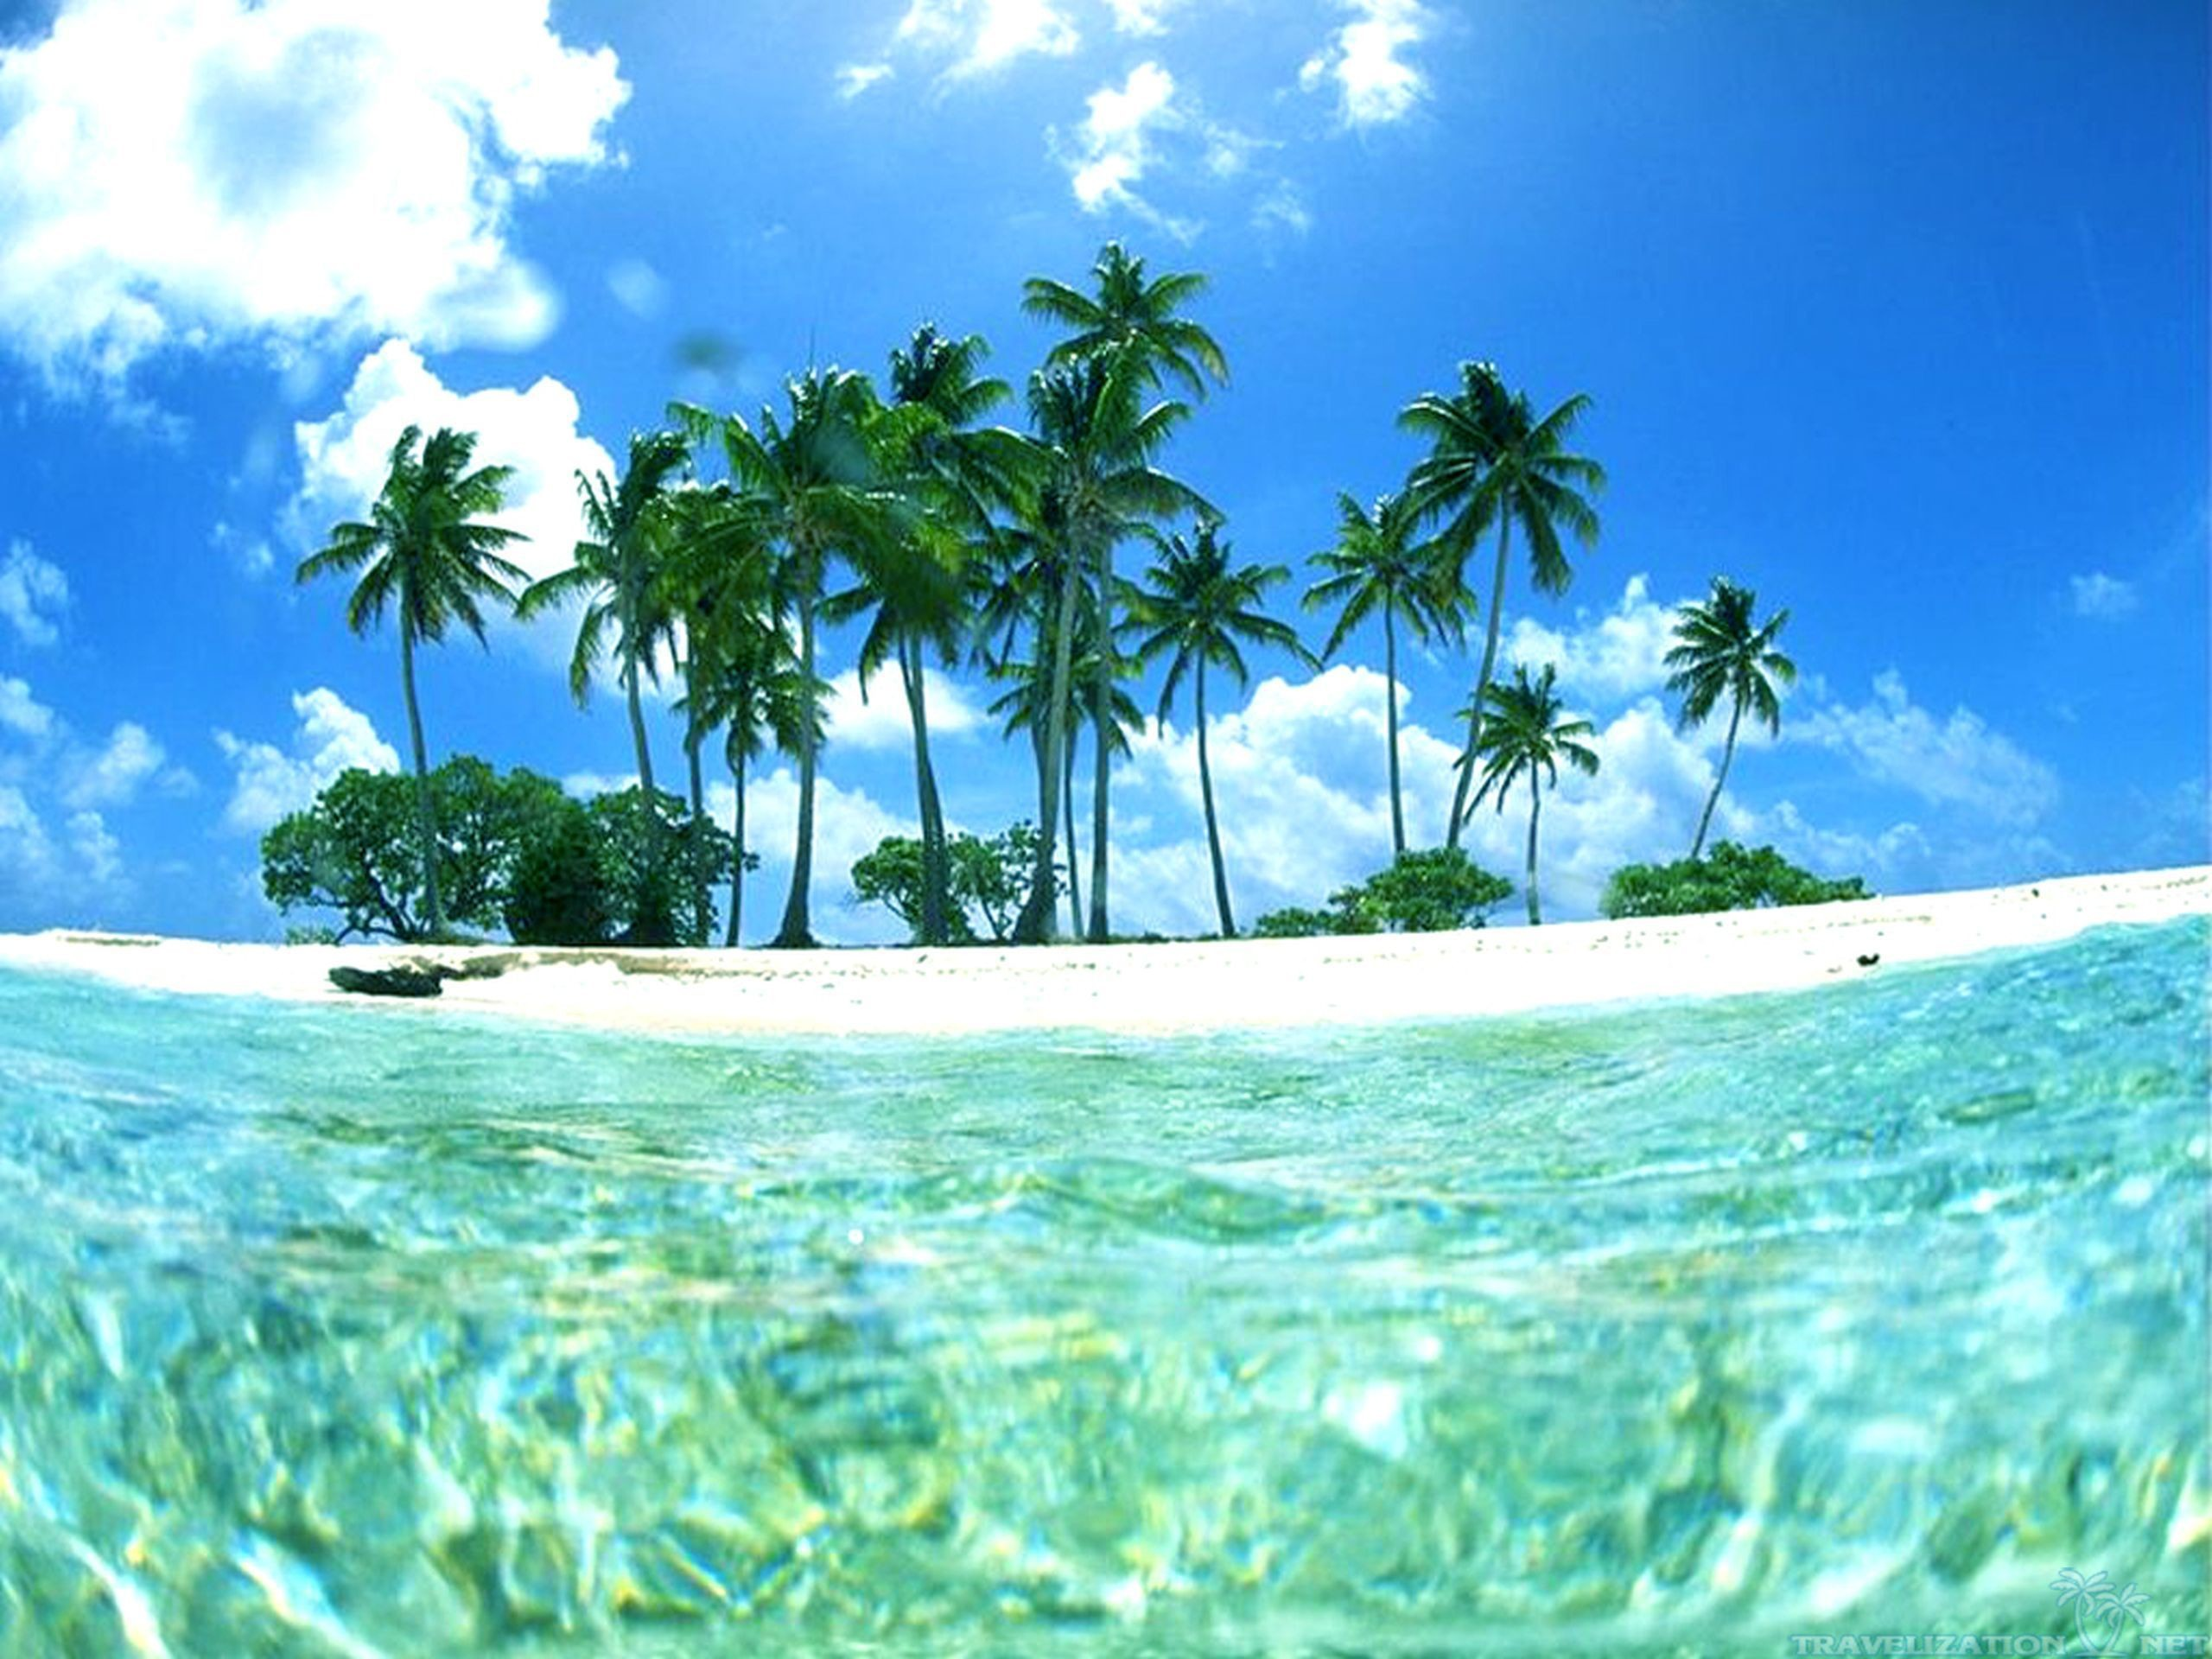 Tropical Beaches Hd Background Wallpaper 51 HD Wallpapers #7279